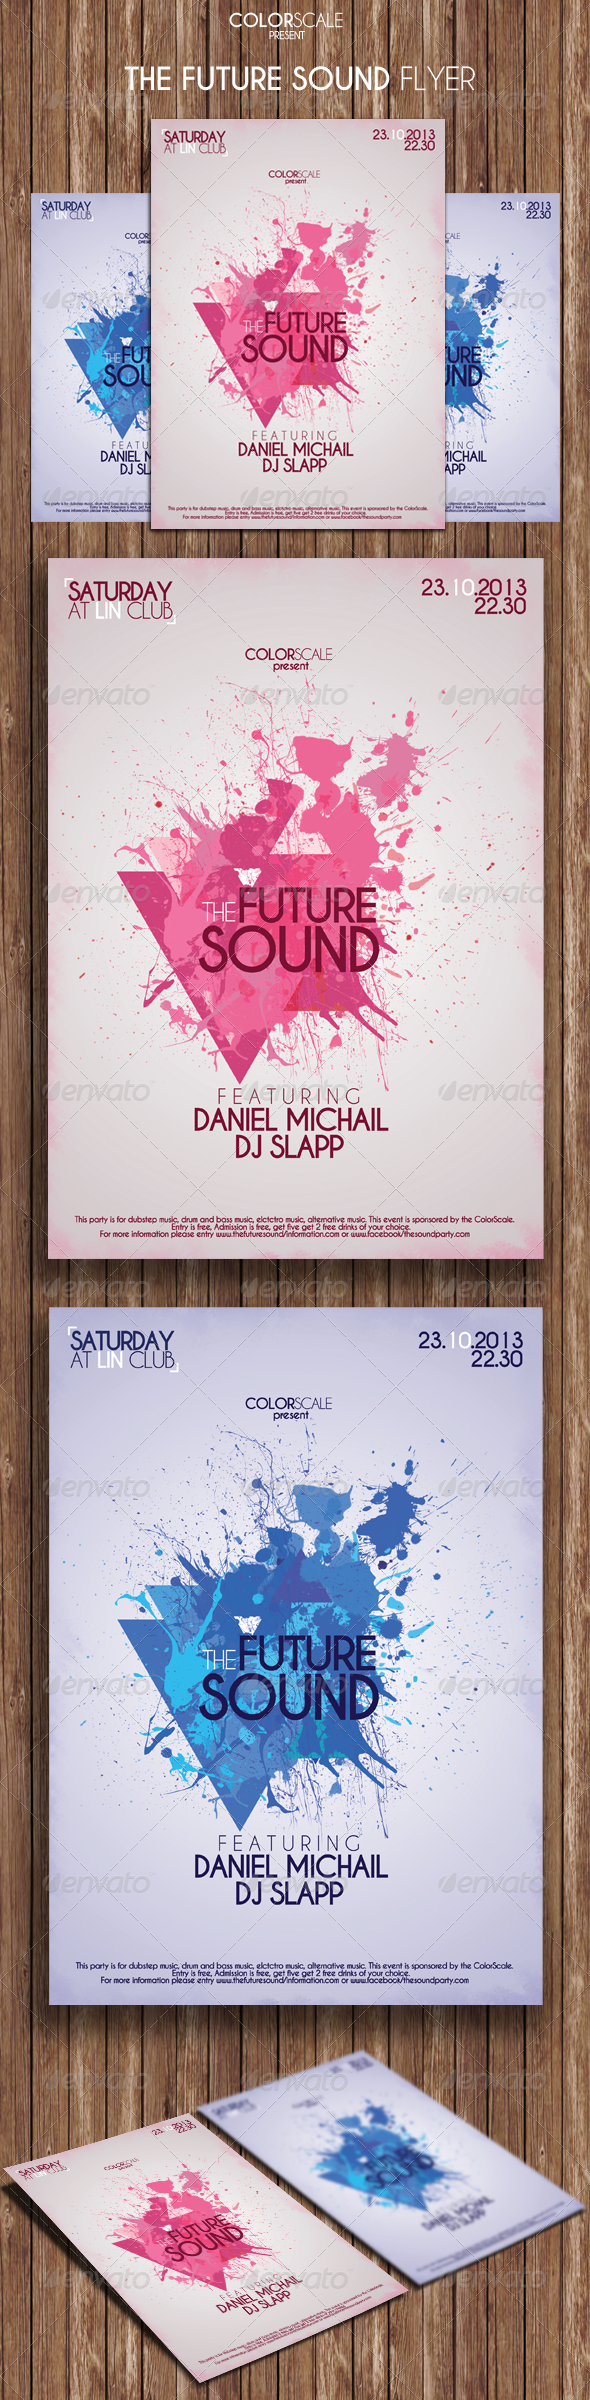 The Future Sound Flyer - Events Flyers